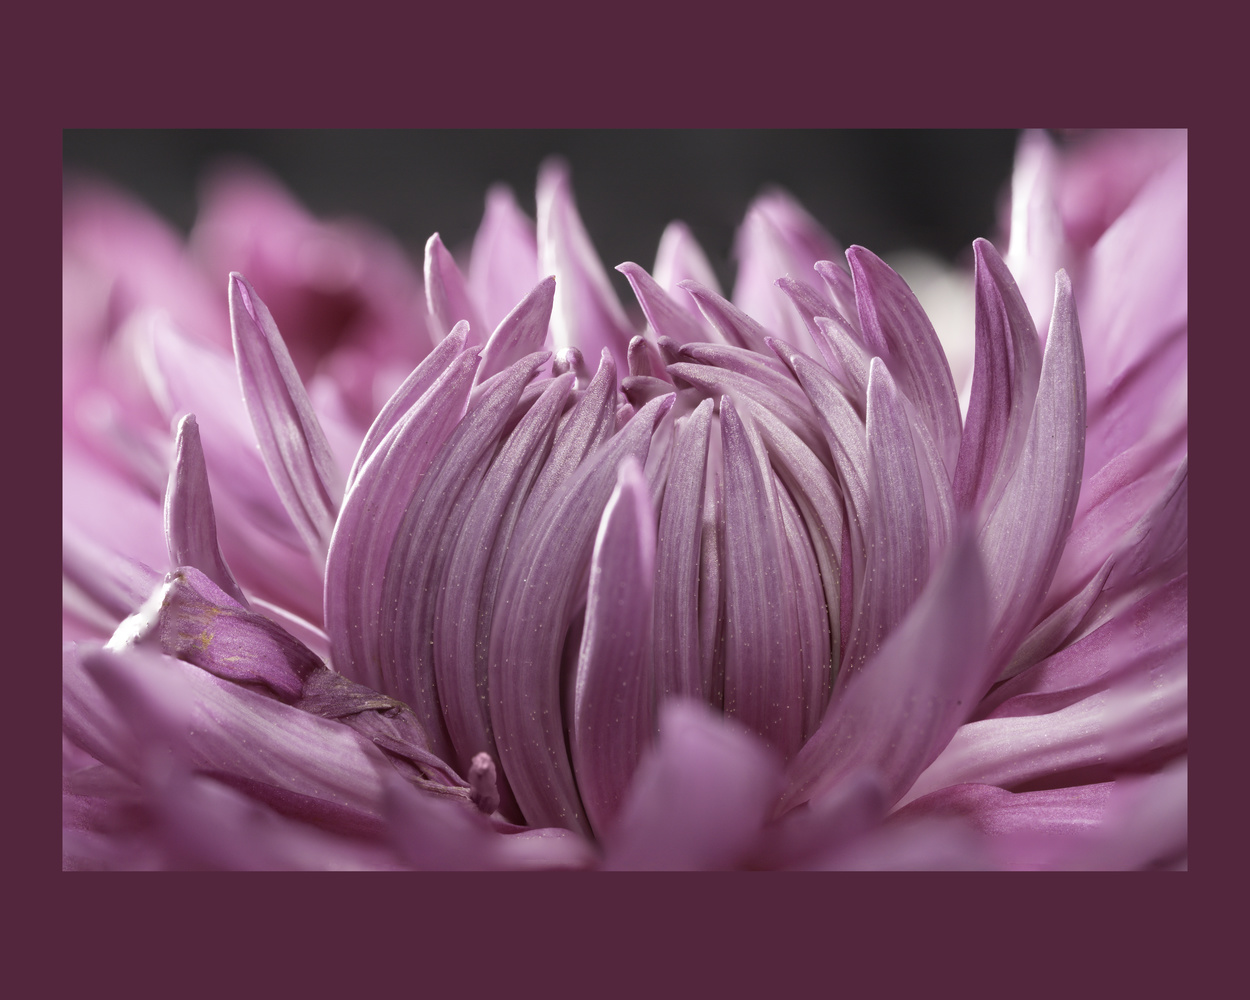 PINK! (Focus Stacked closeup) by Charles Haacker